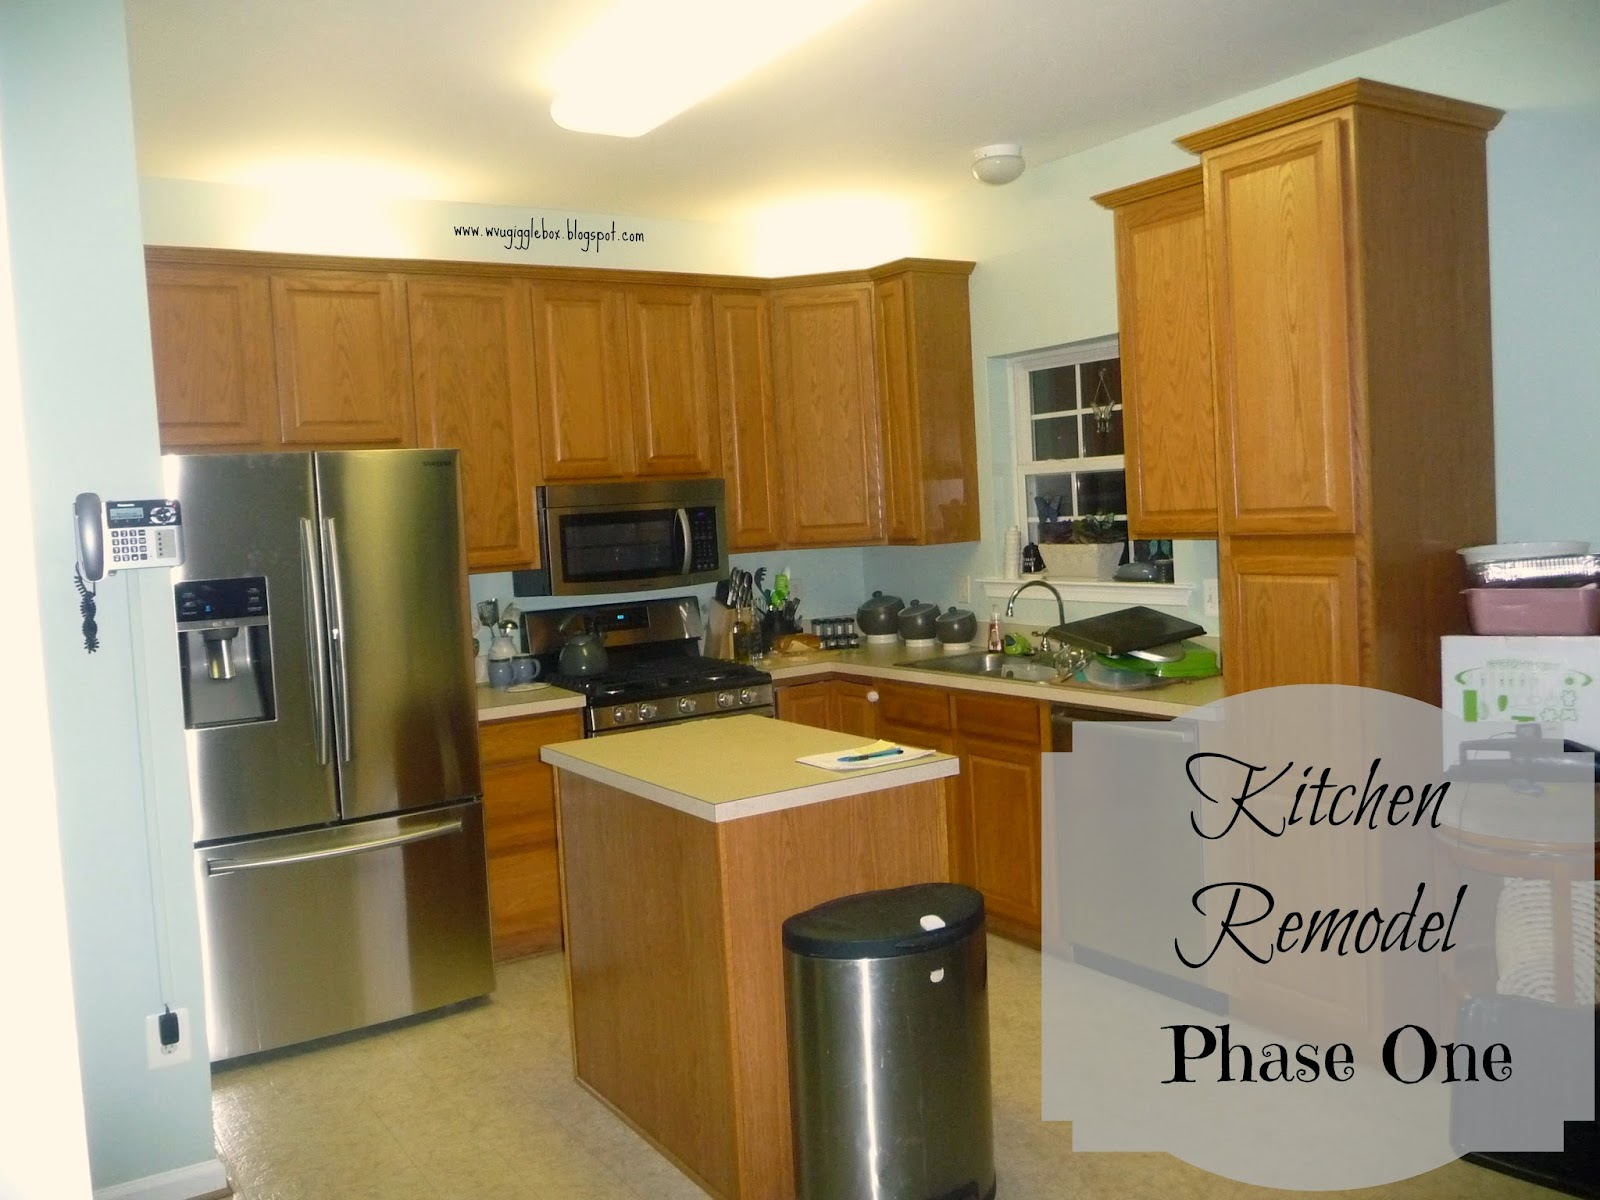 kitchen remodel, updating kitchen, DIY kitchen remodel, cheap kitchen remodel,